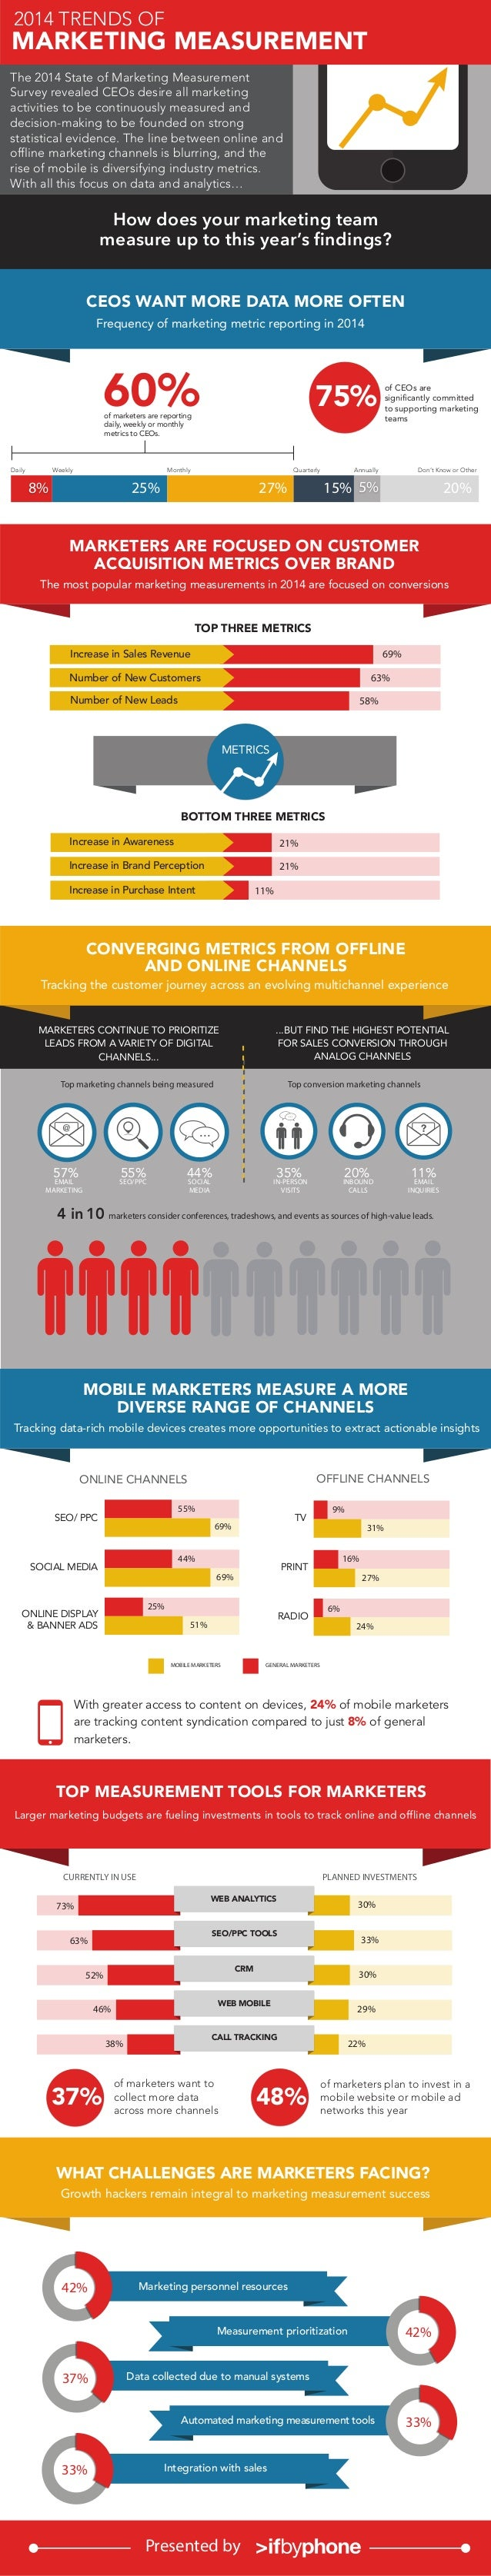 State of marketing measurement survey 2014